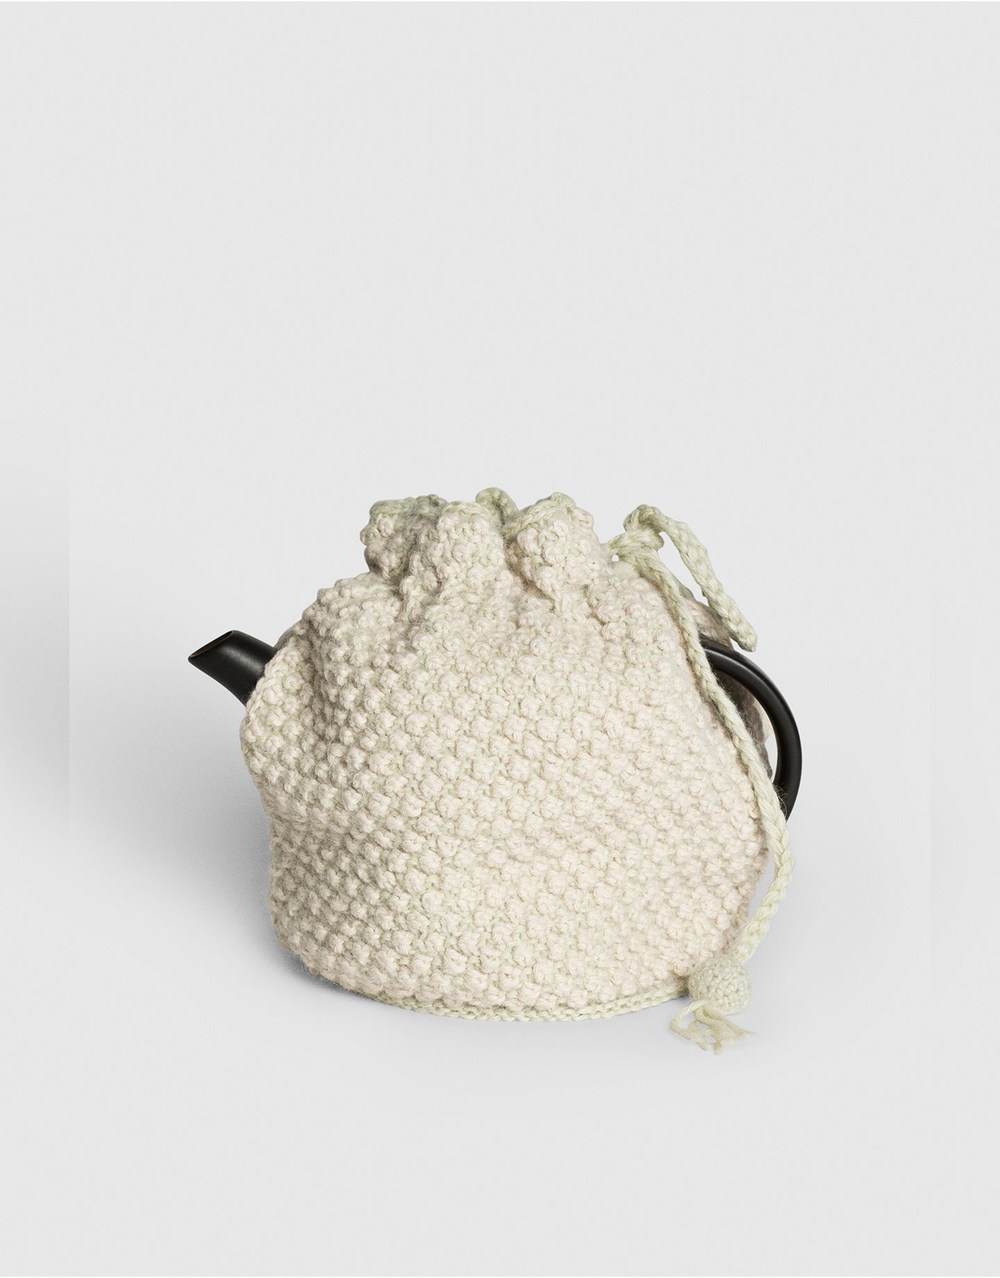 Aiayu | Comfy Handknitted Tea Warmer €96.10